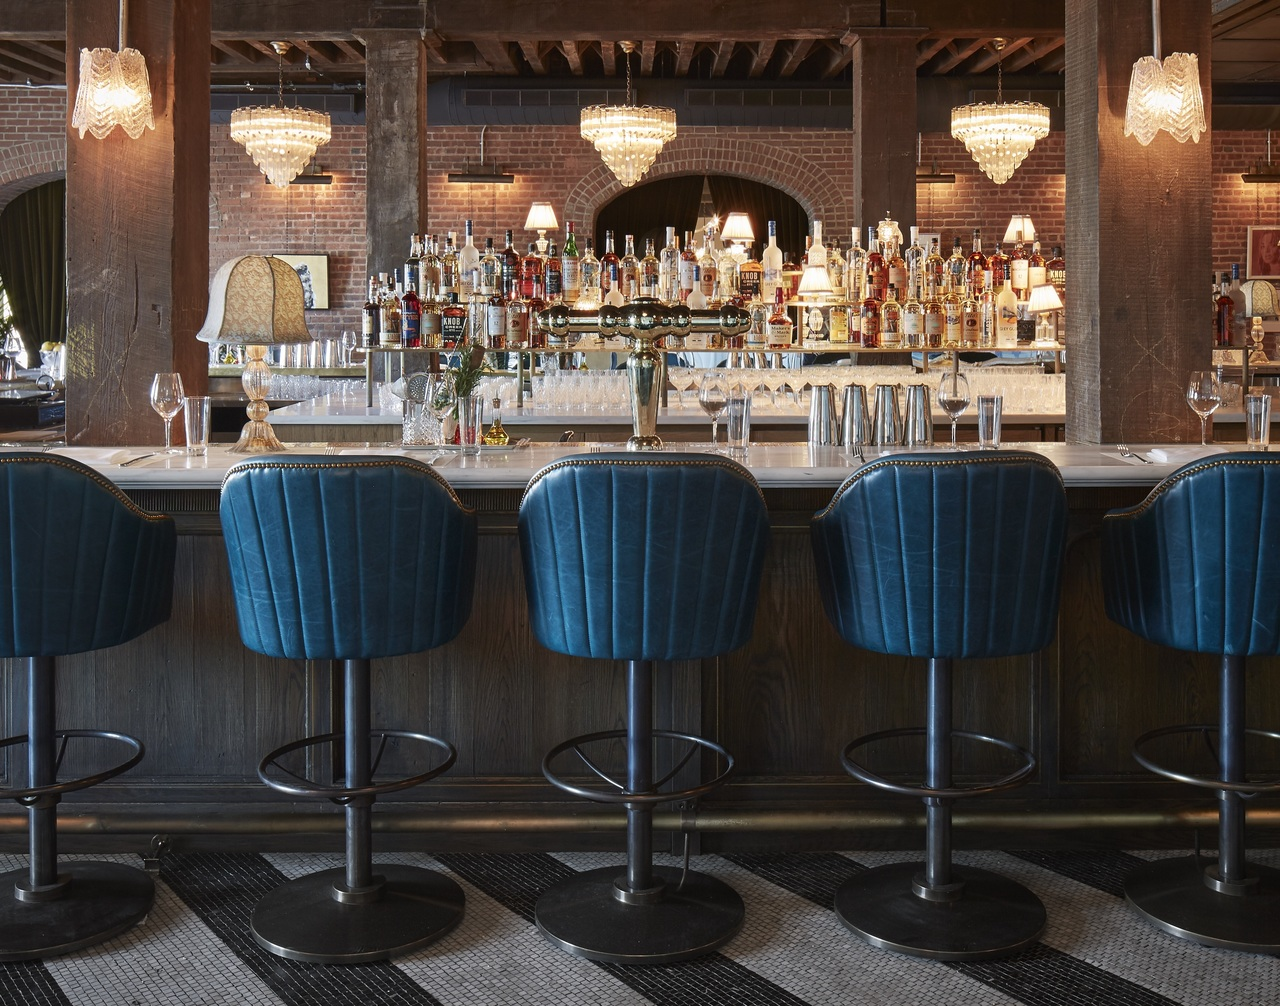 A bar, leather stools and classic Italian furnishings